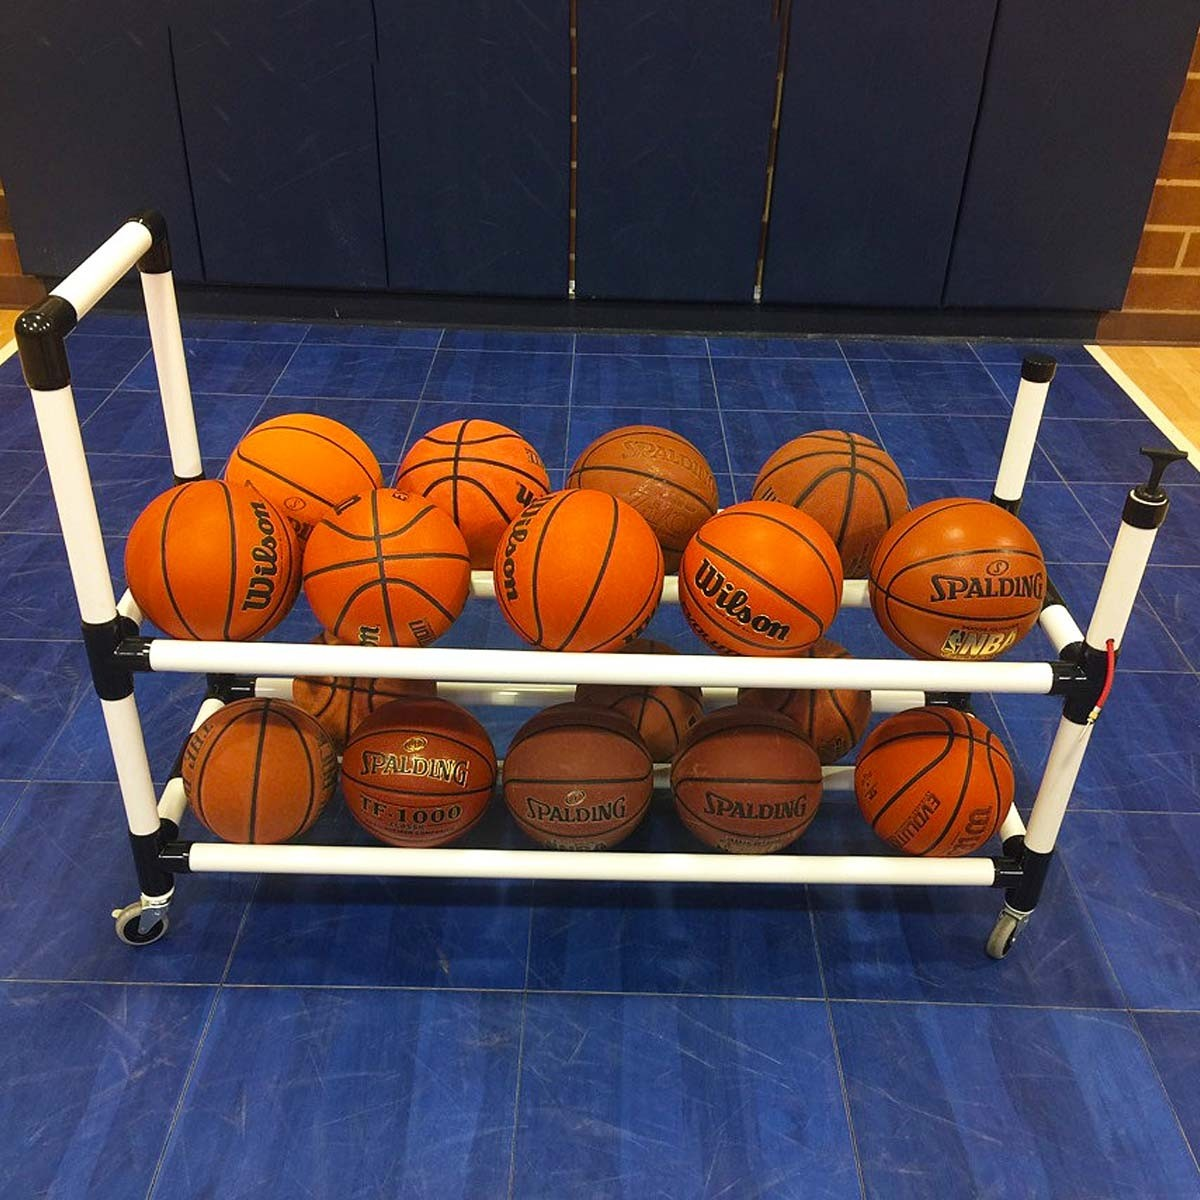 20 Ball Rack Shown